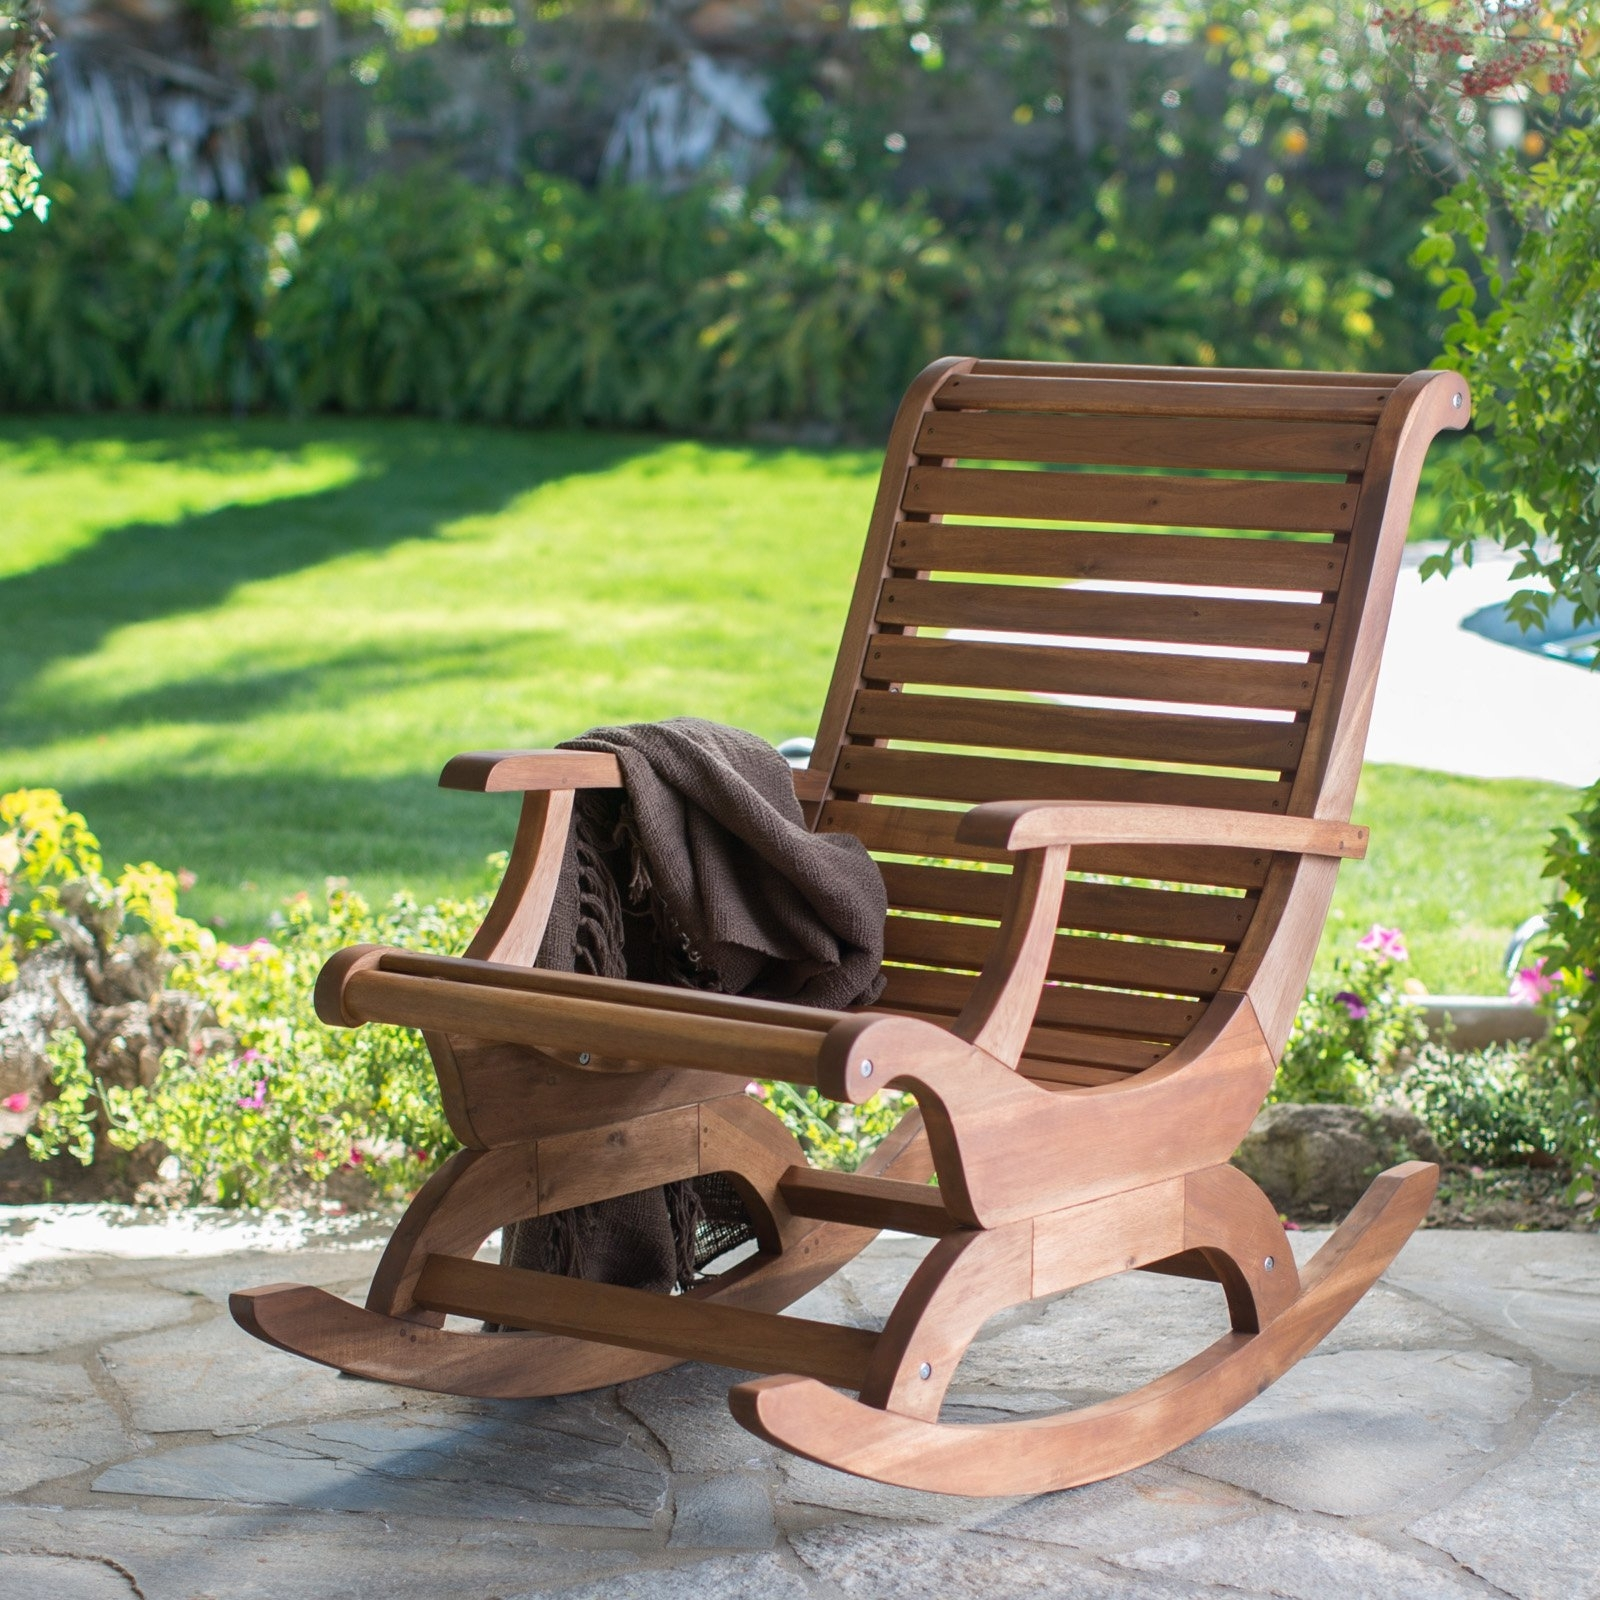 Belham Living Avondale Oversized Outdoor Rocking Chair – Natural With Regard To Well Liked Oversized Patio Rocking Chairs (View 3 of 20)